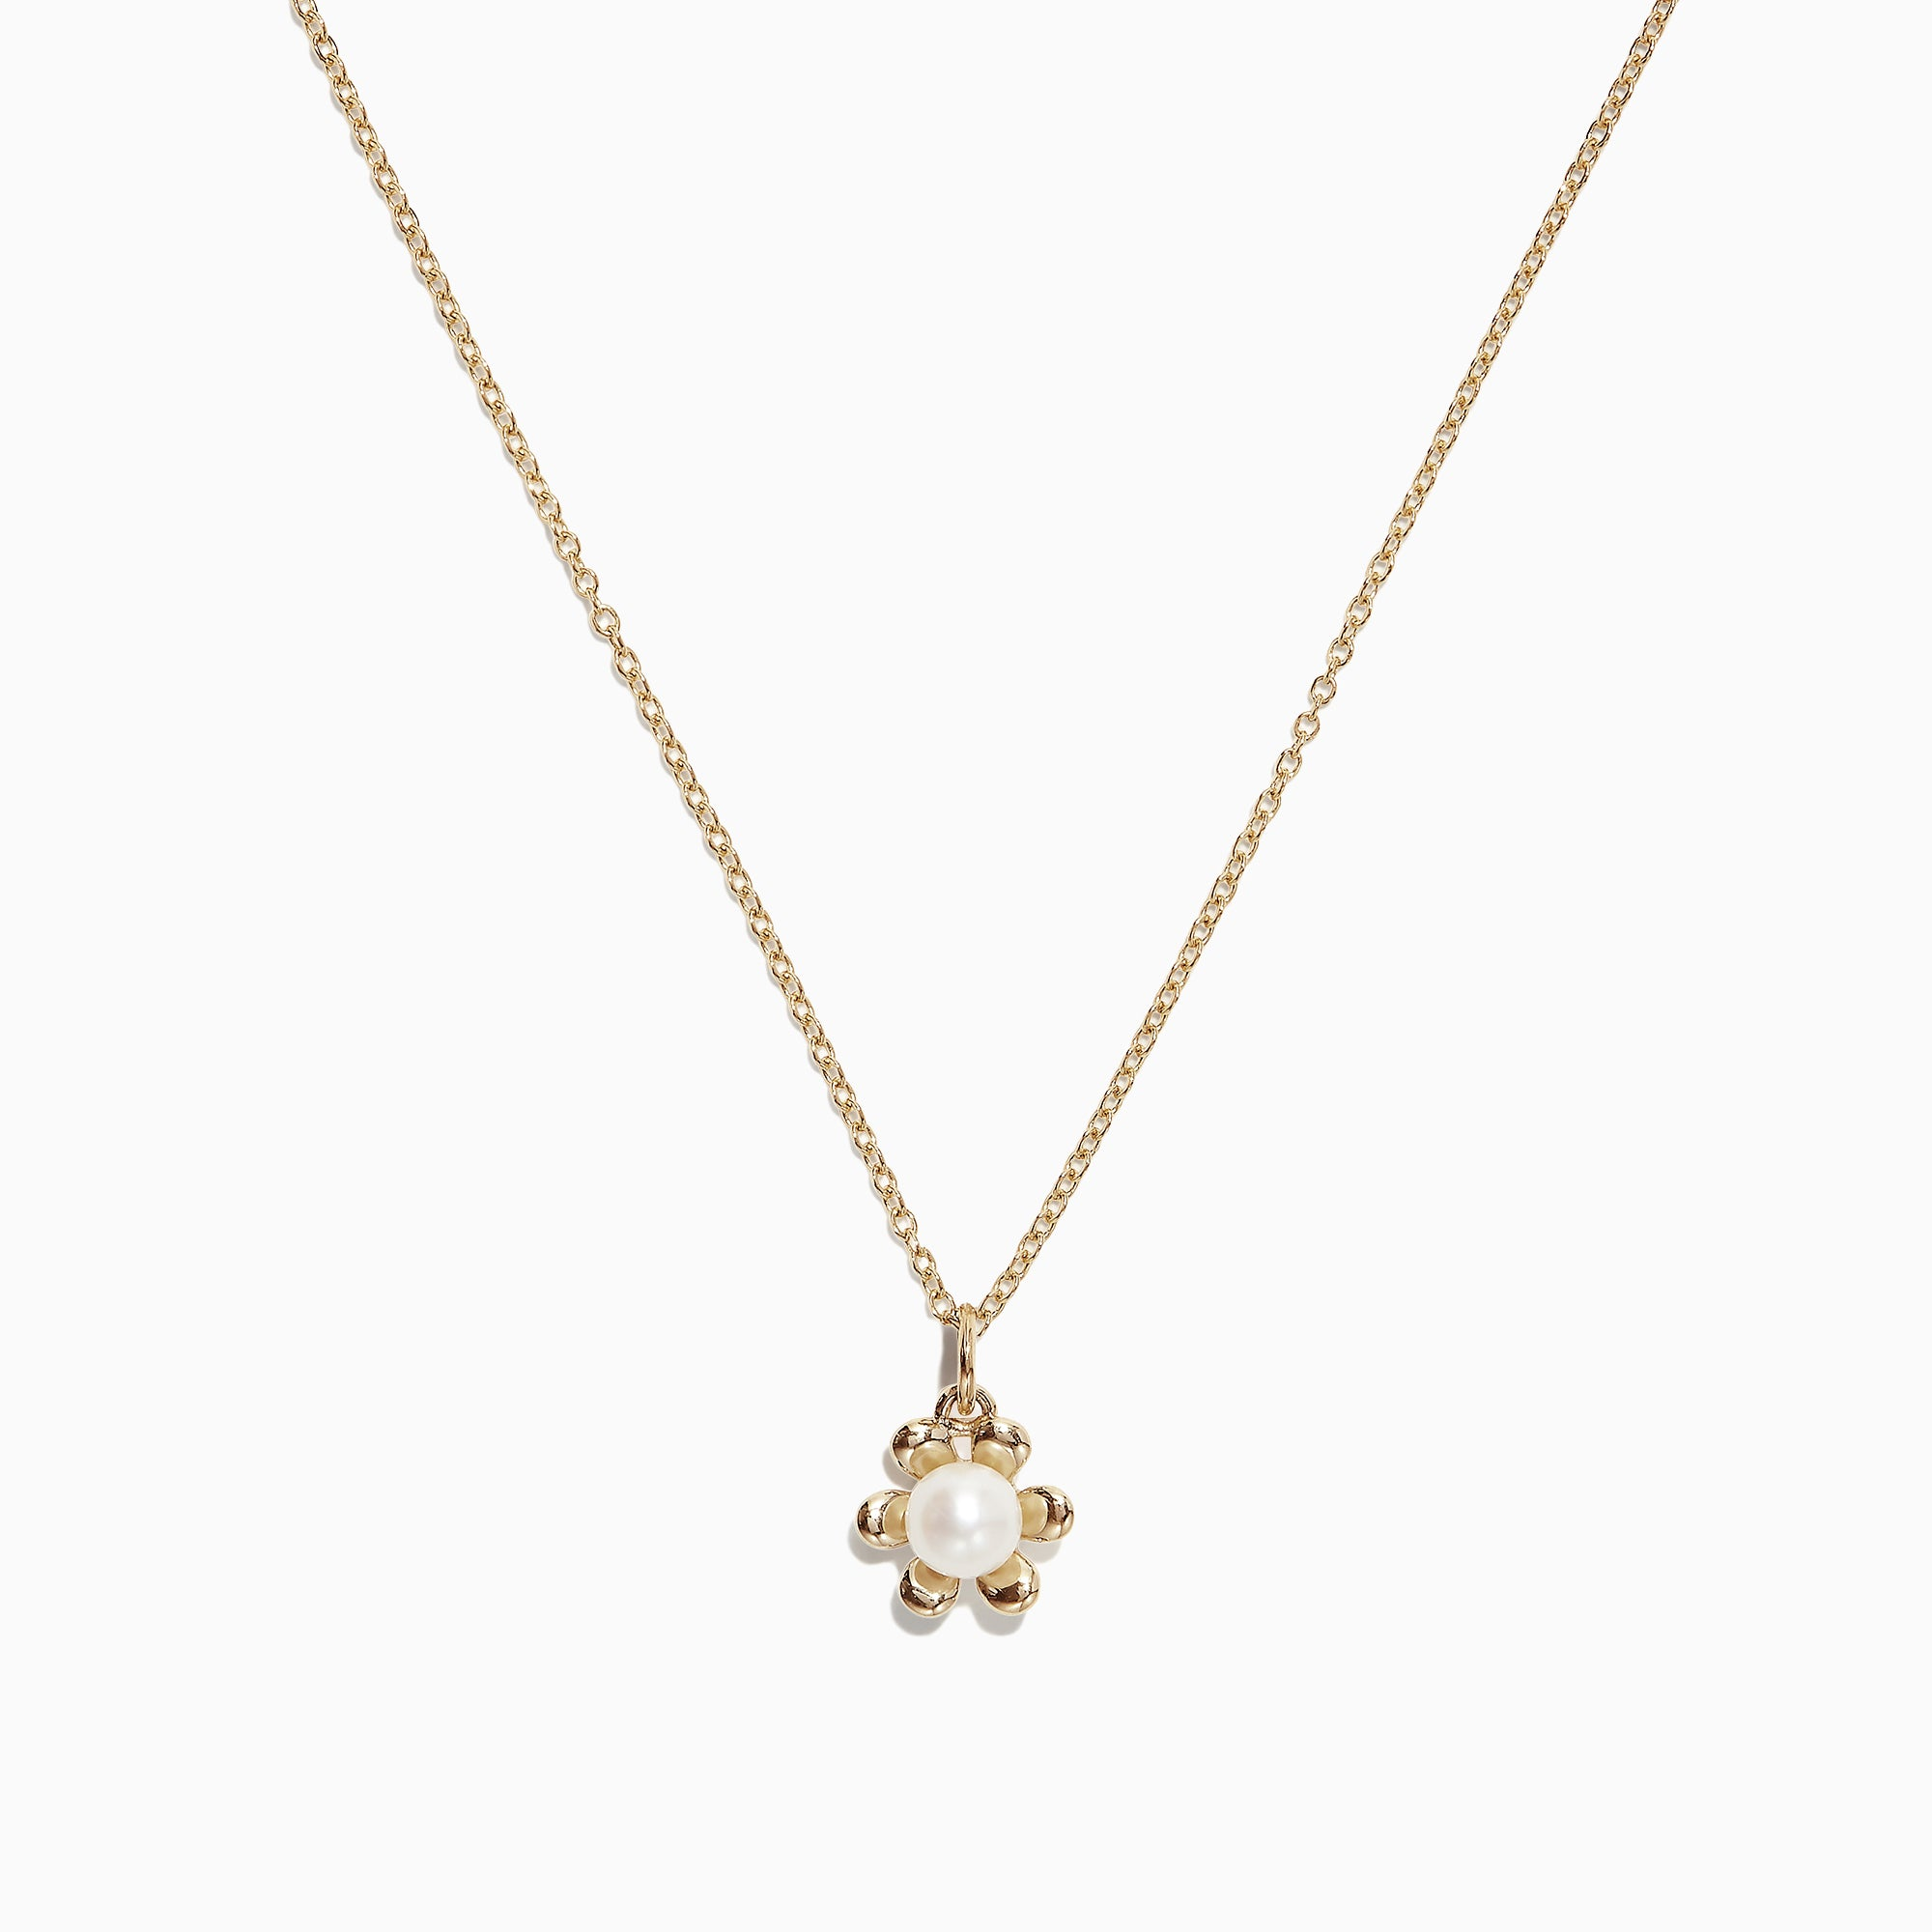 Effy Kidz 14K Yellow Gold Fresh Water Pearl Flower Pendant, 0.23 TCW